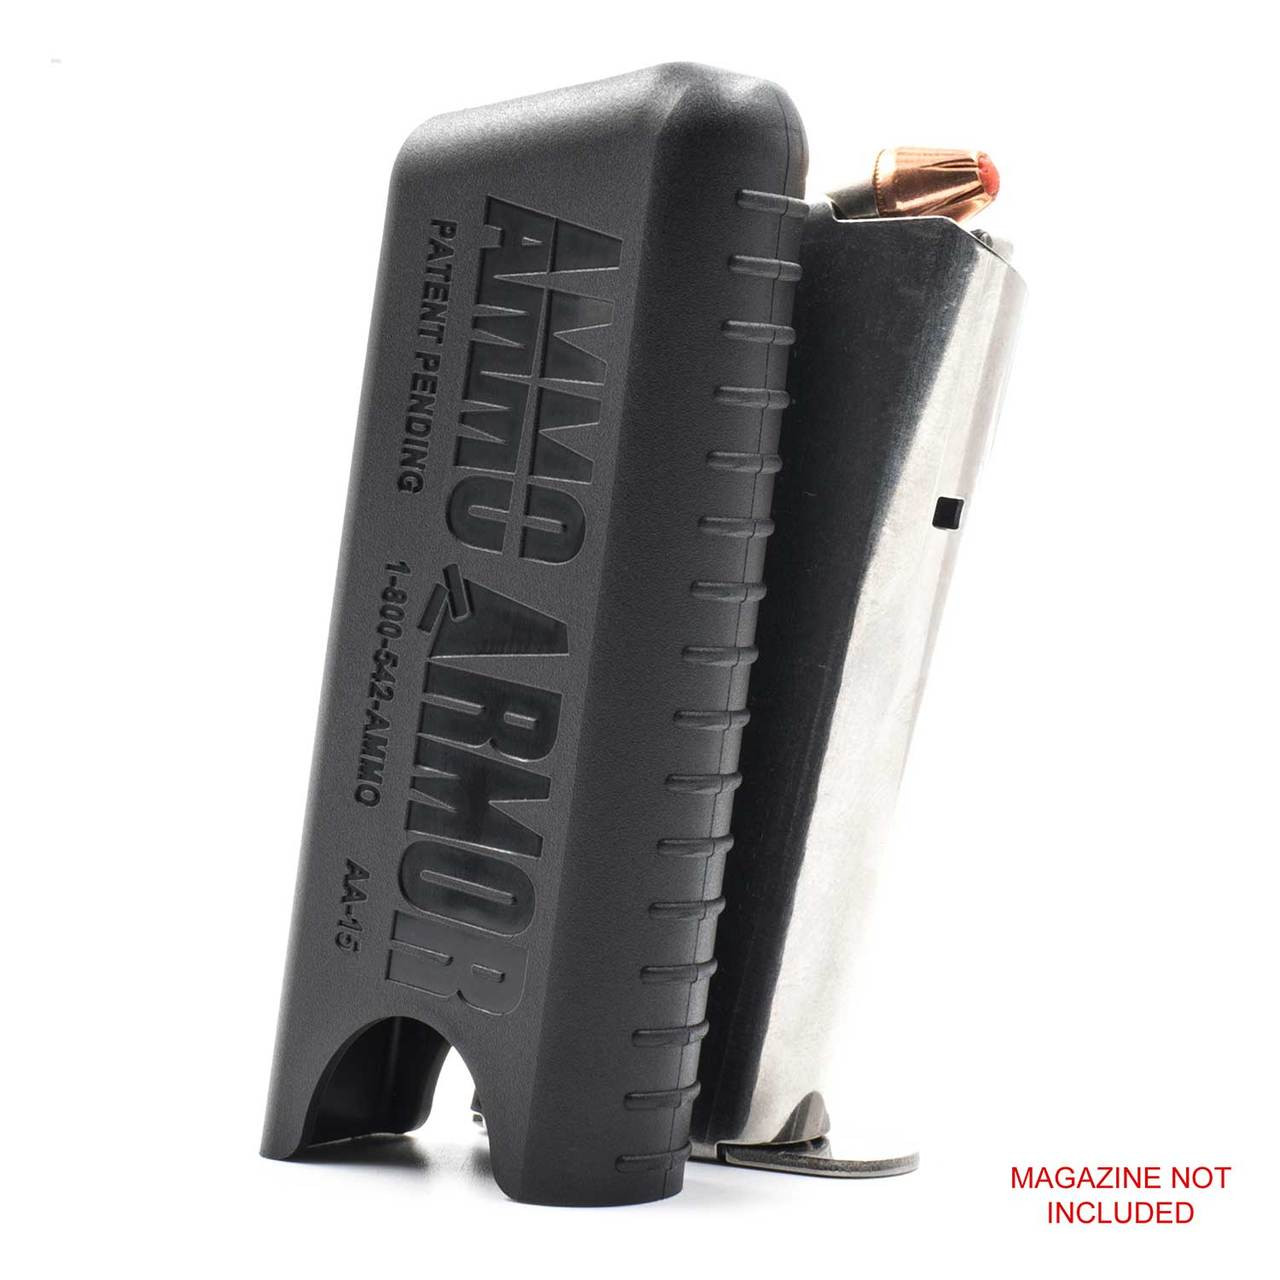 Sig Sauer P290 Magazine Protector